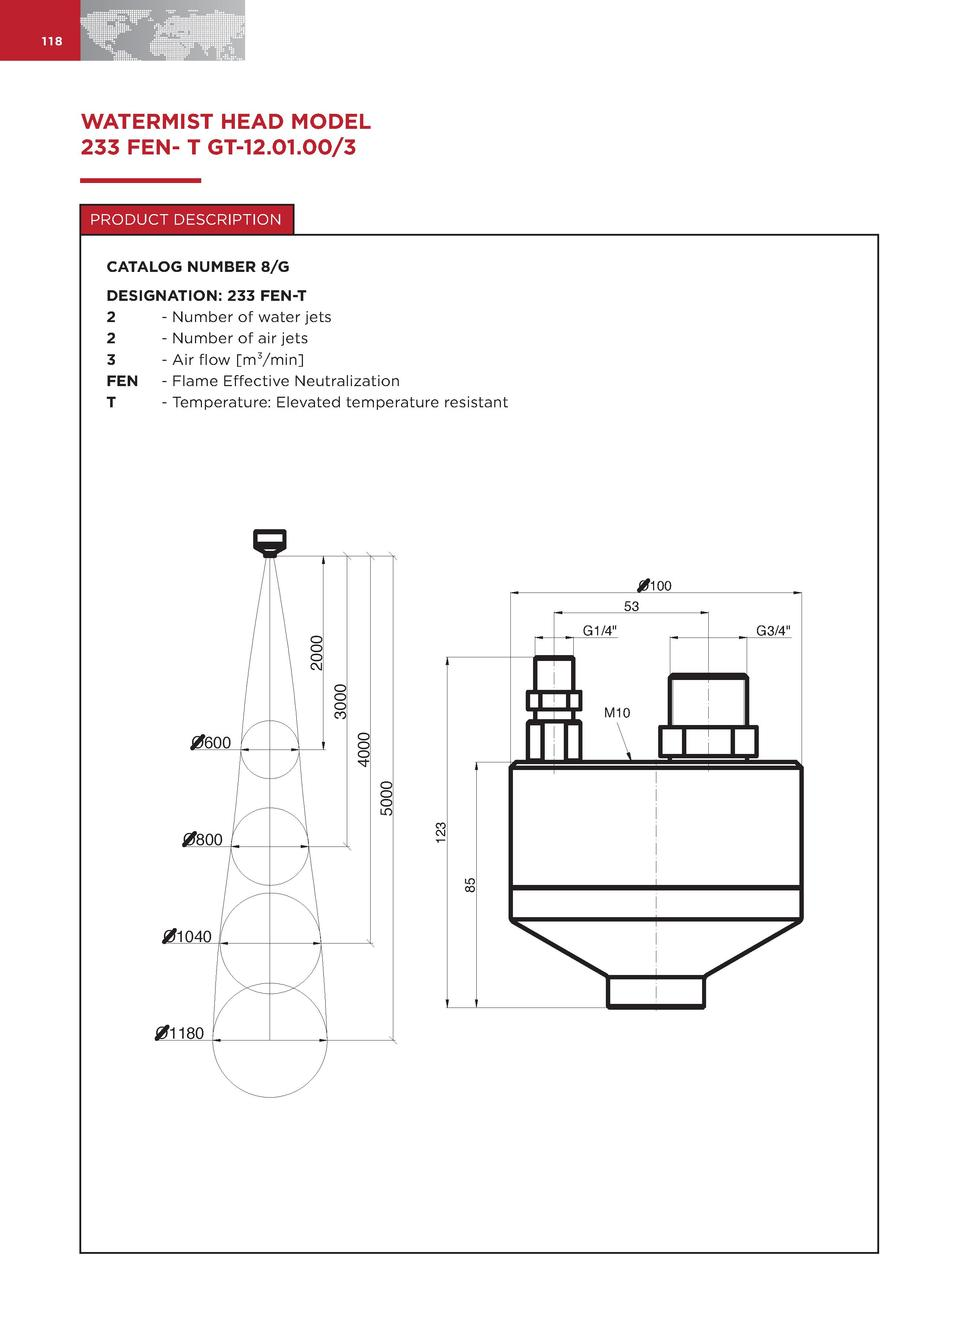 118  WATERMIST HEAD MODEL 233 FEN- T GT-12.01.00 3 PRODUCT DESCRIPTION CATALOG NUMBER 8 G DESIGNATION  233 FEN-T 2 - Numbe...